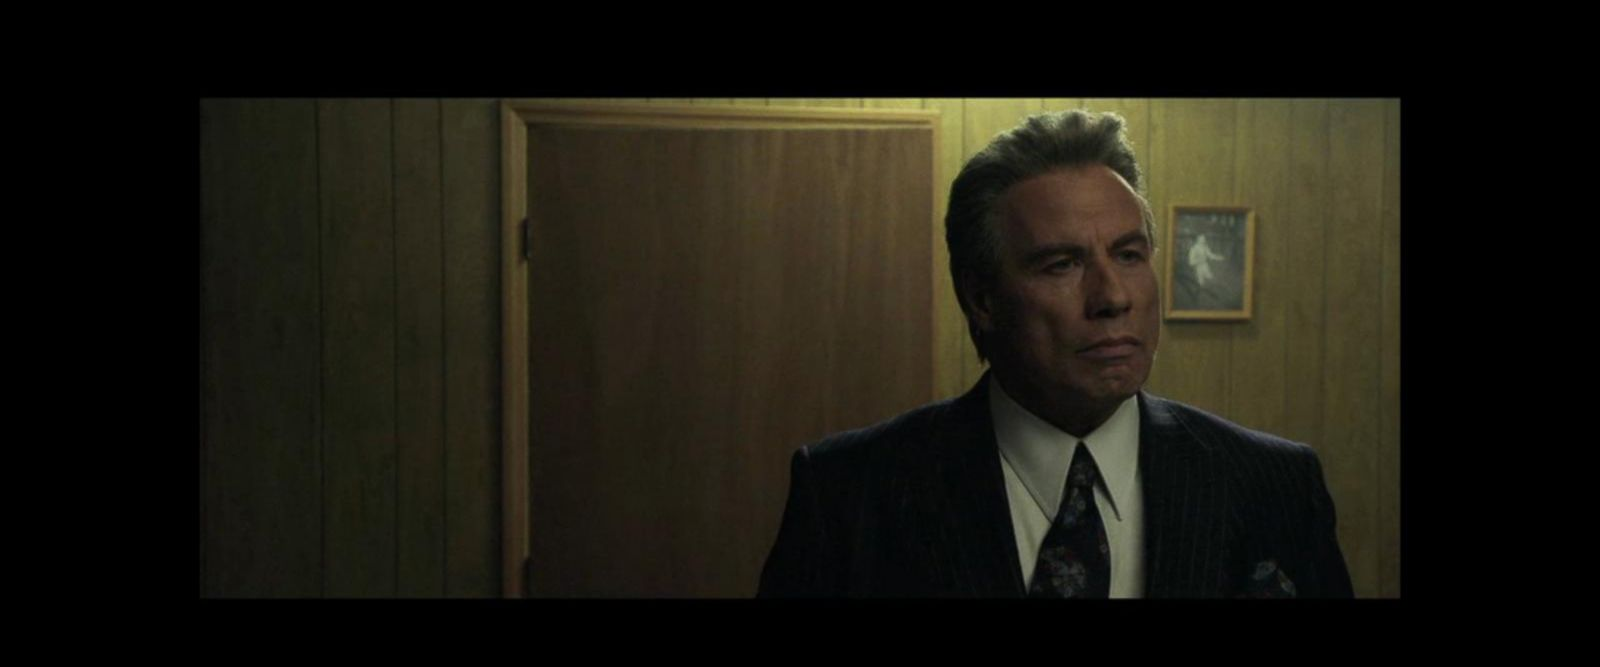 VIDEO: Exclusive 1st look at the trailer for 'Gotti'